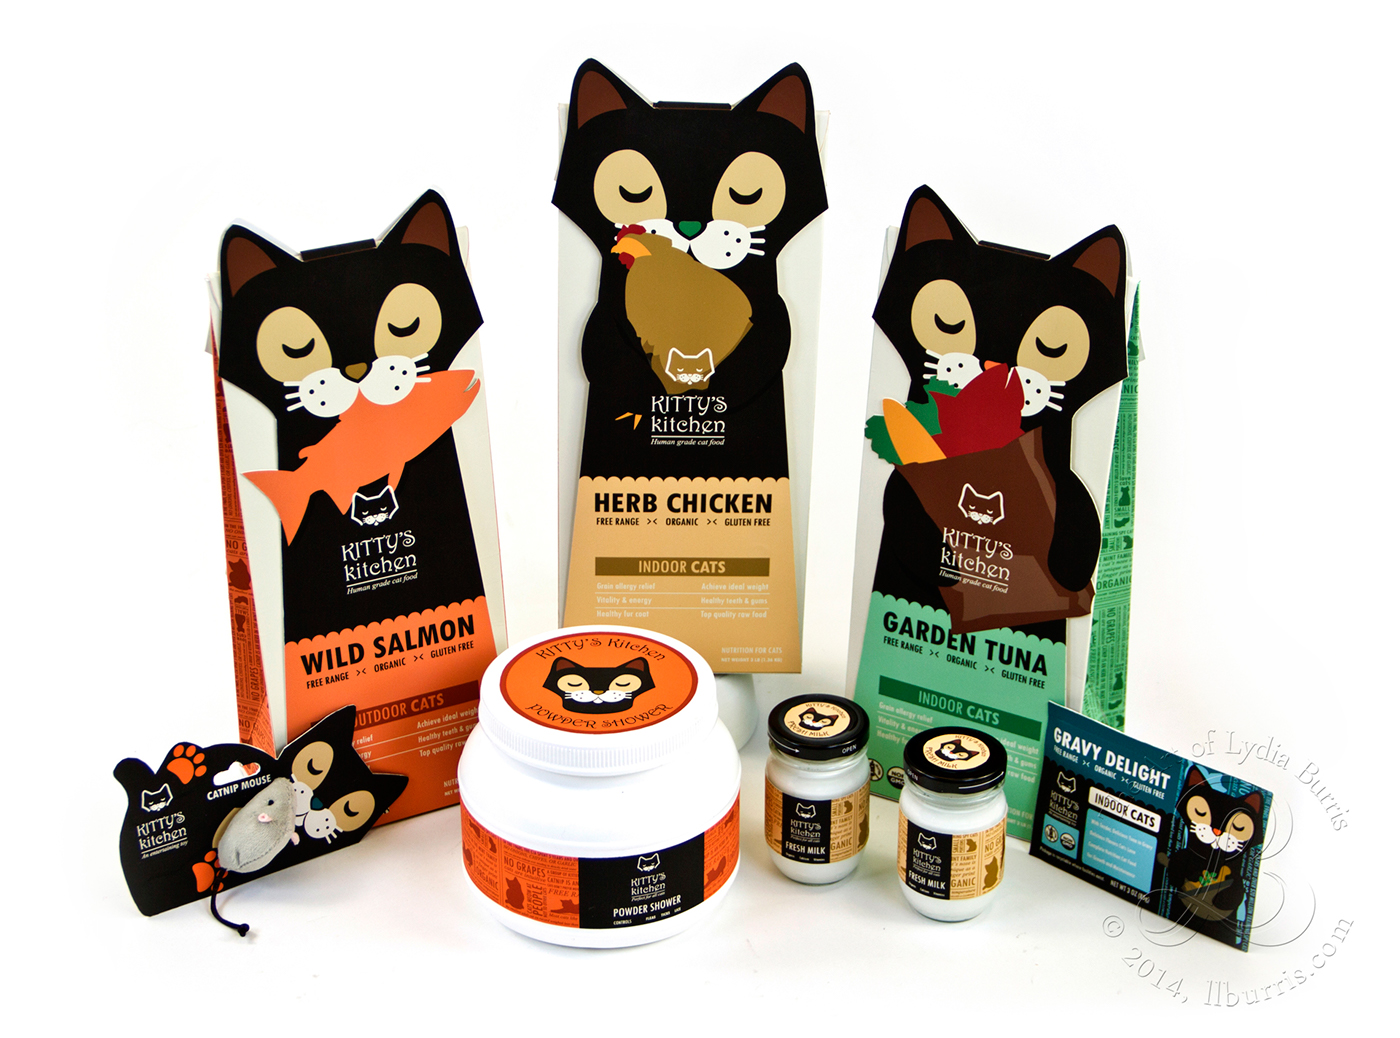 Toy Packaging Design Jobs